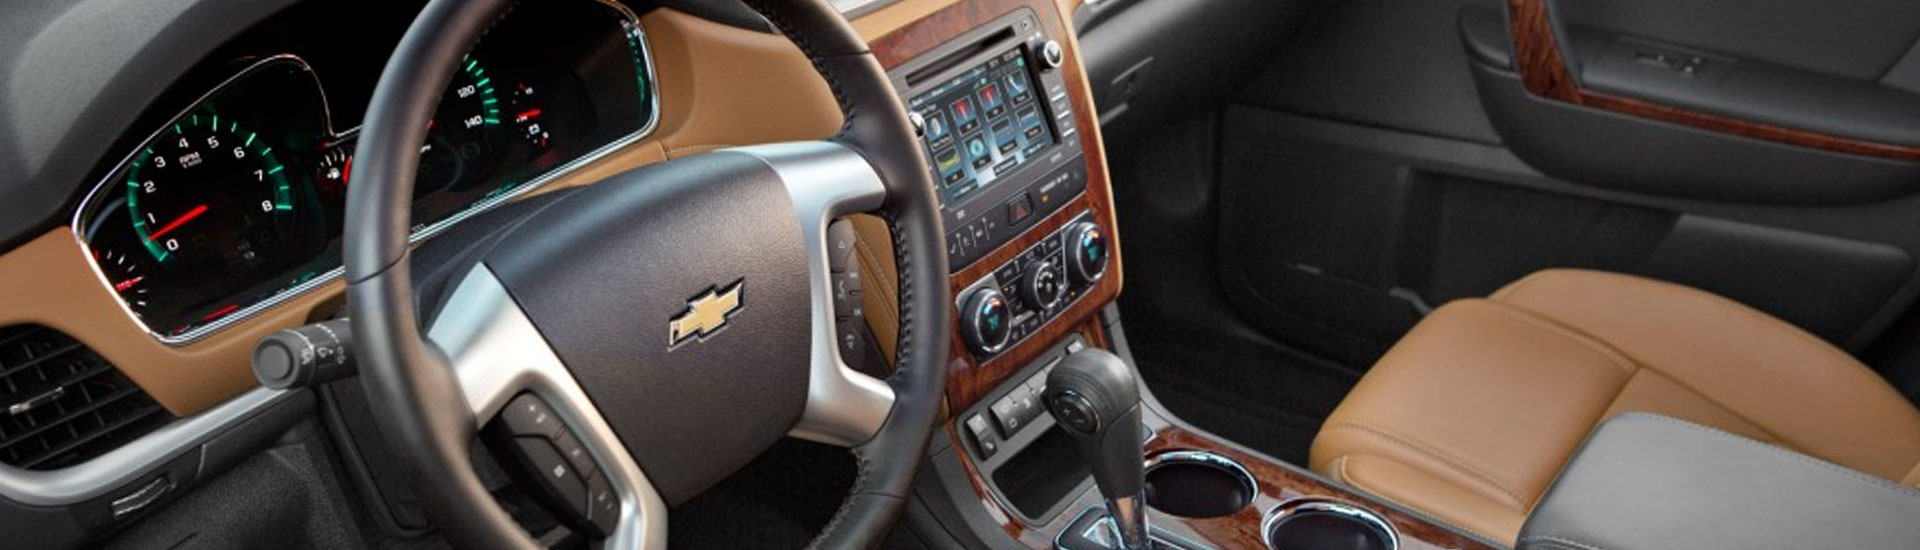 Chevrolet Traverse Dash Kits